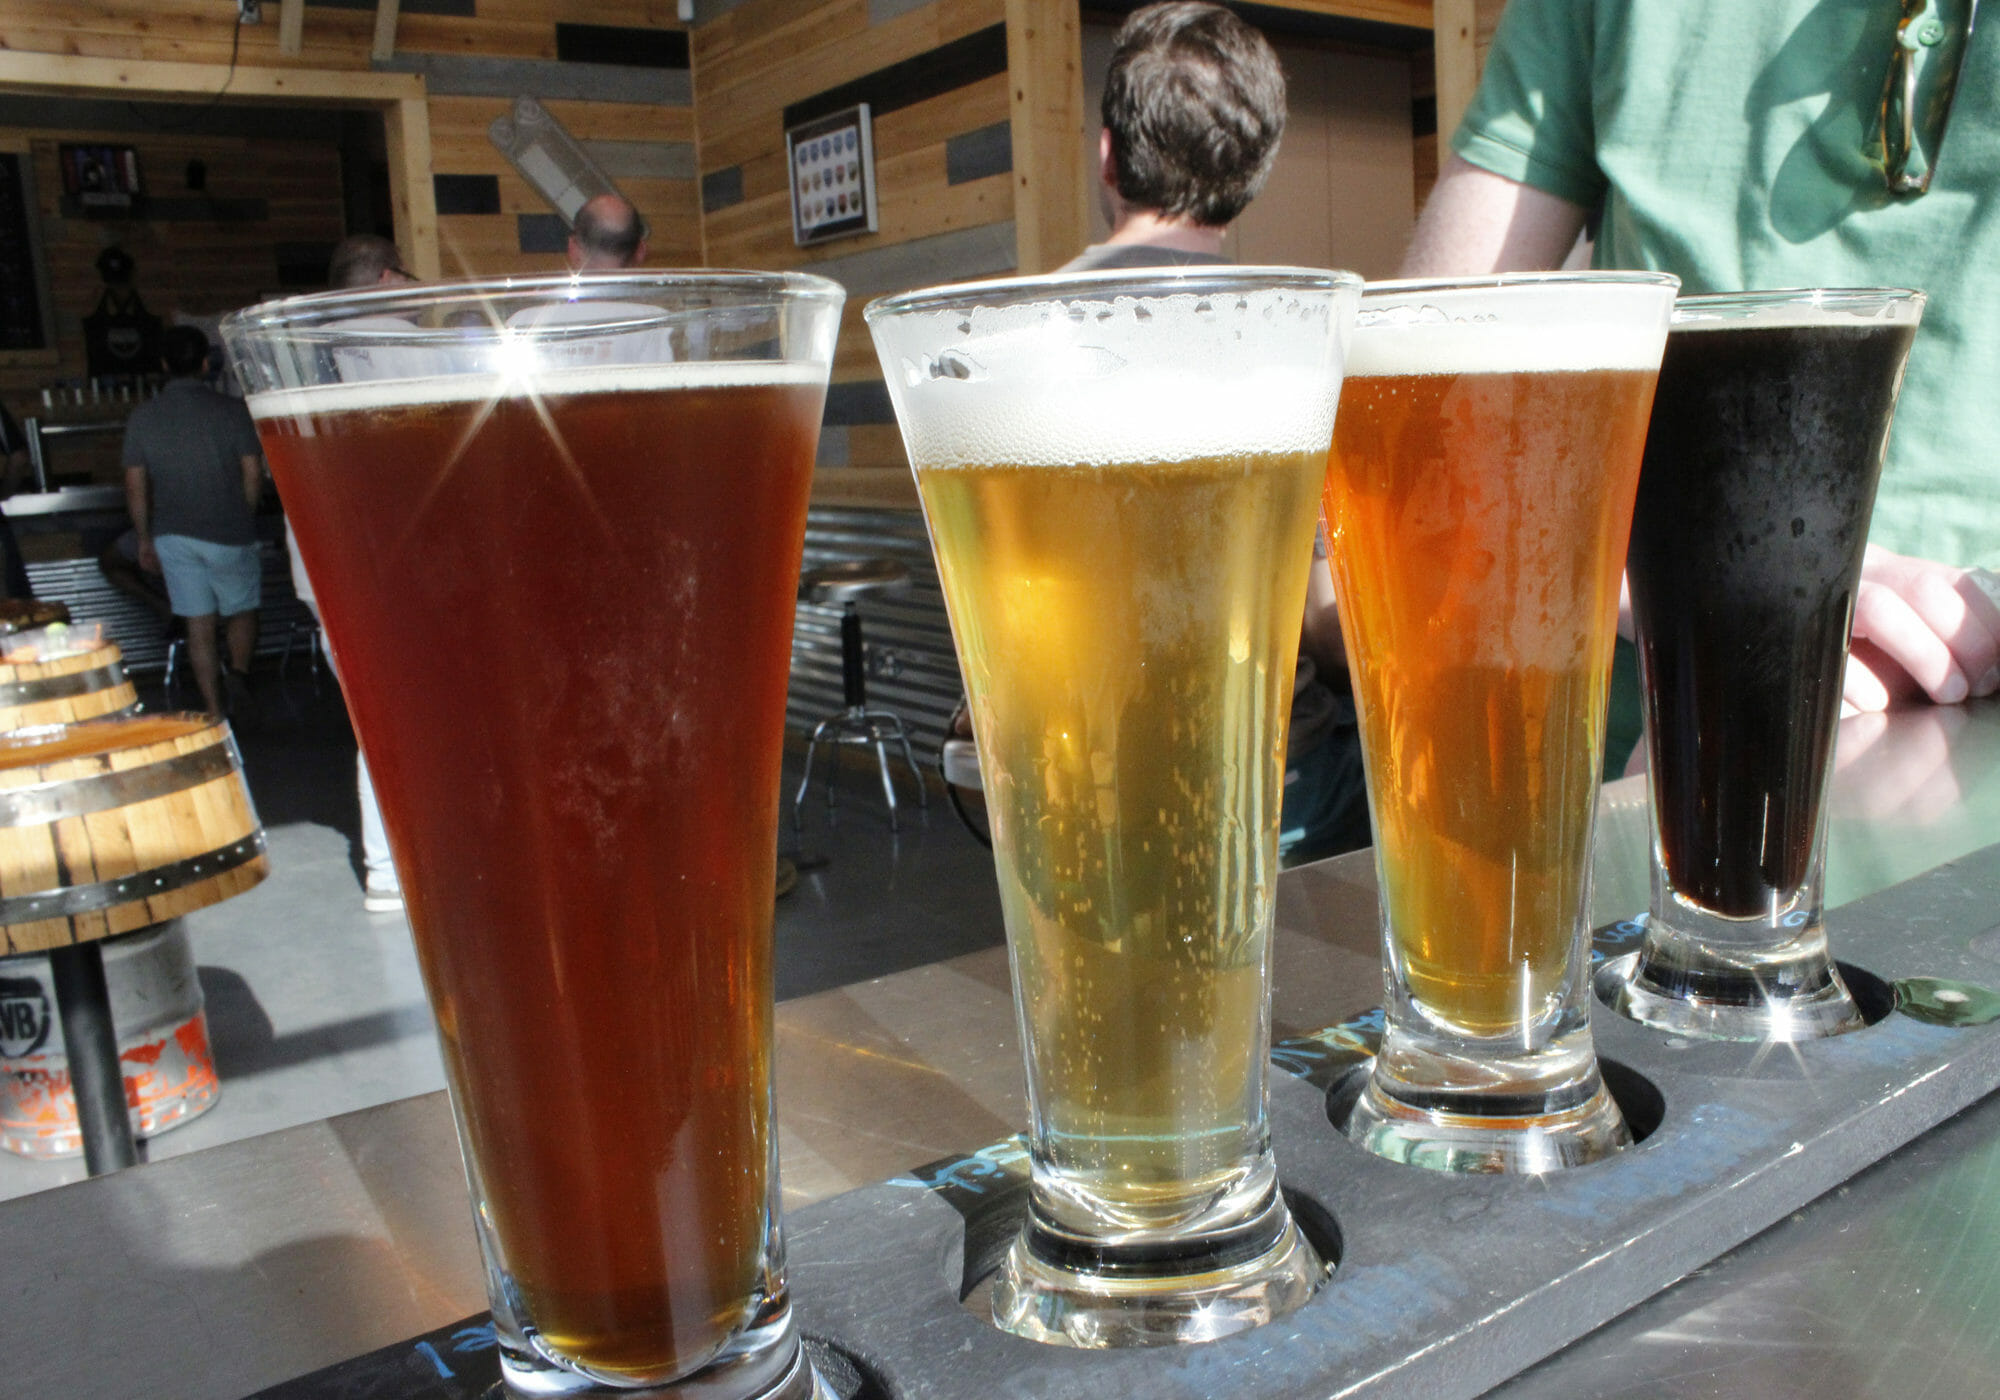 Flight of beer at Coachella Valley Brewing Co.